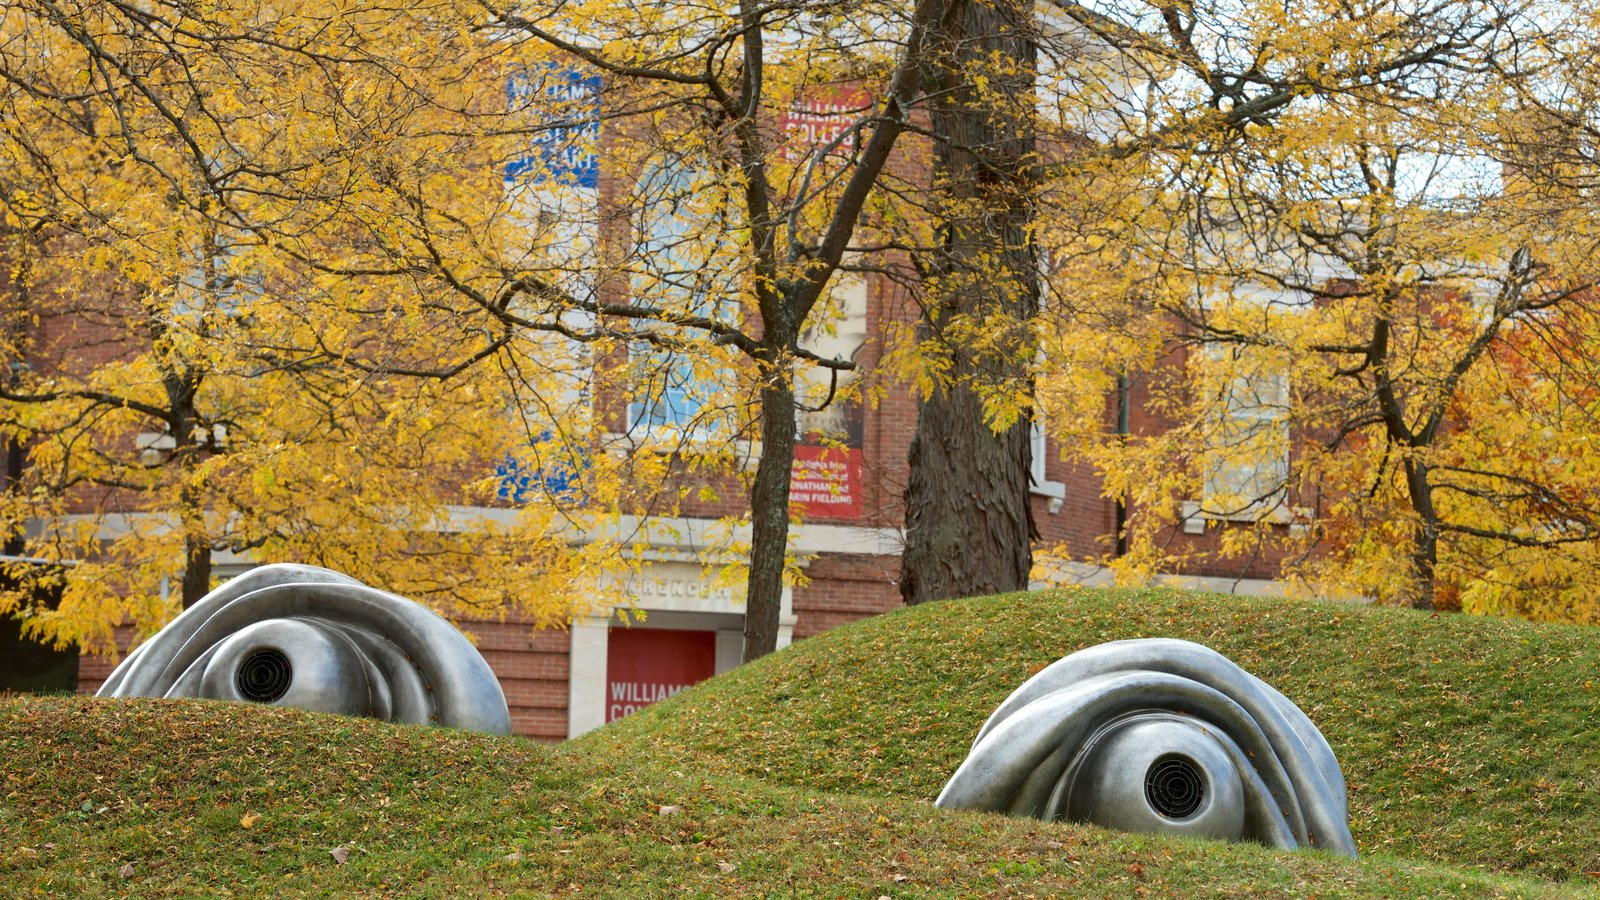 Williamstown showing outdoor art and fall colors